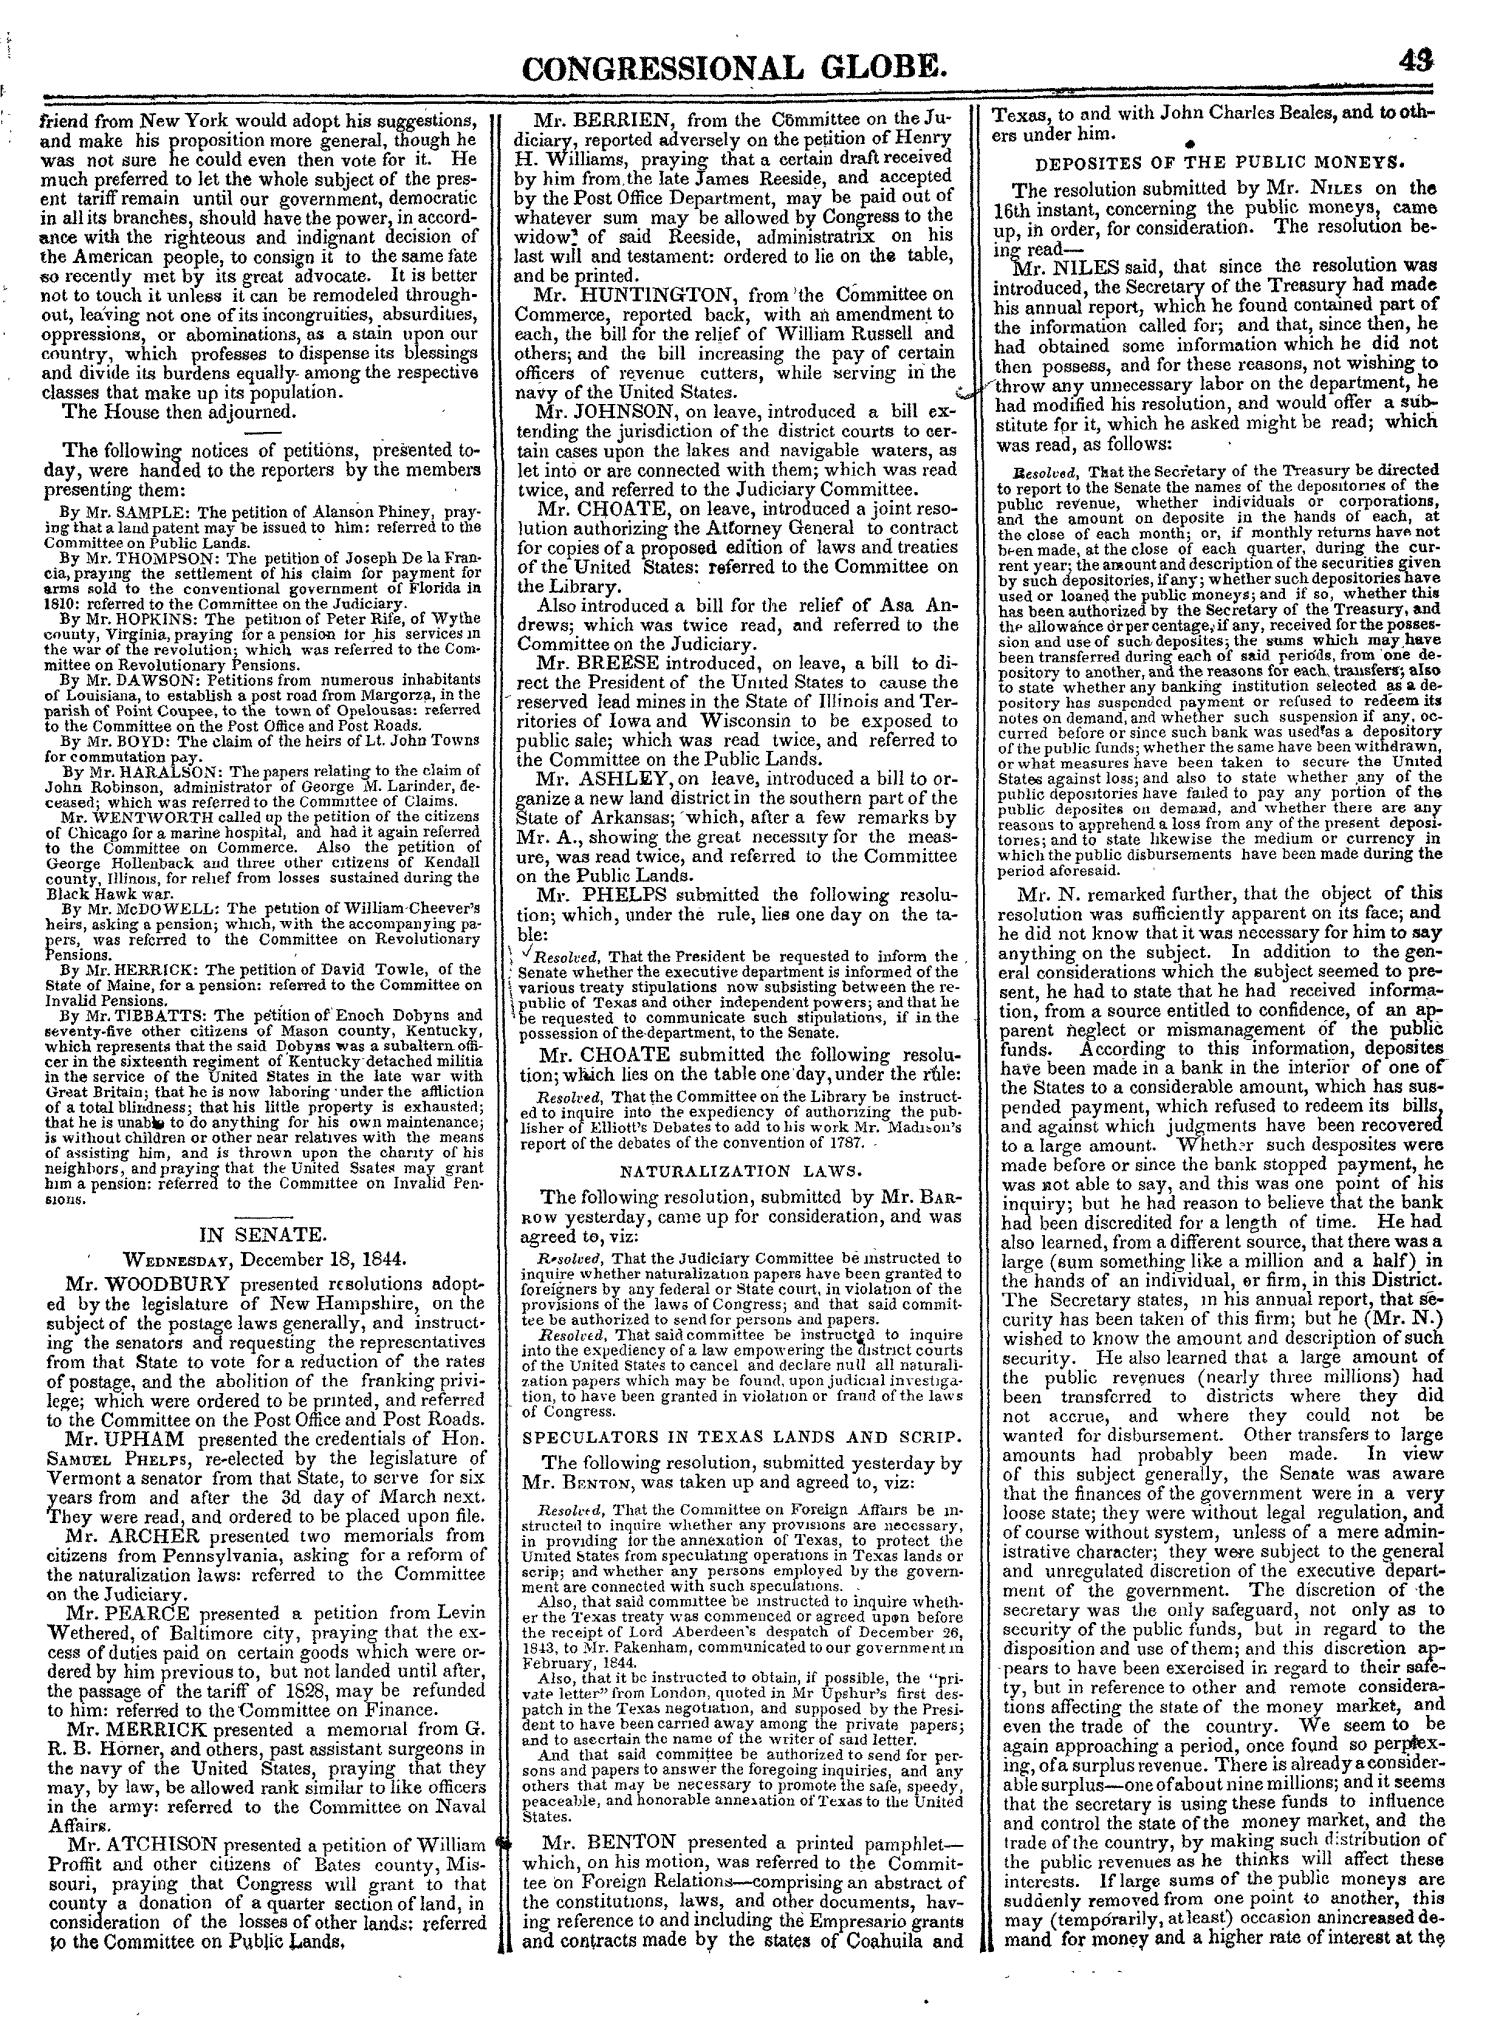 The Congressional Globe, Volume 14: Twenty-Eighth Congress, Second Session                                                                                                      43